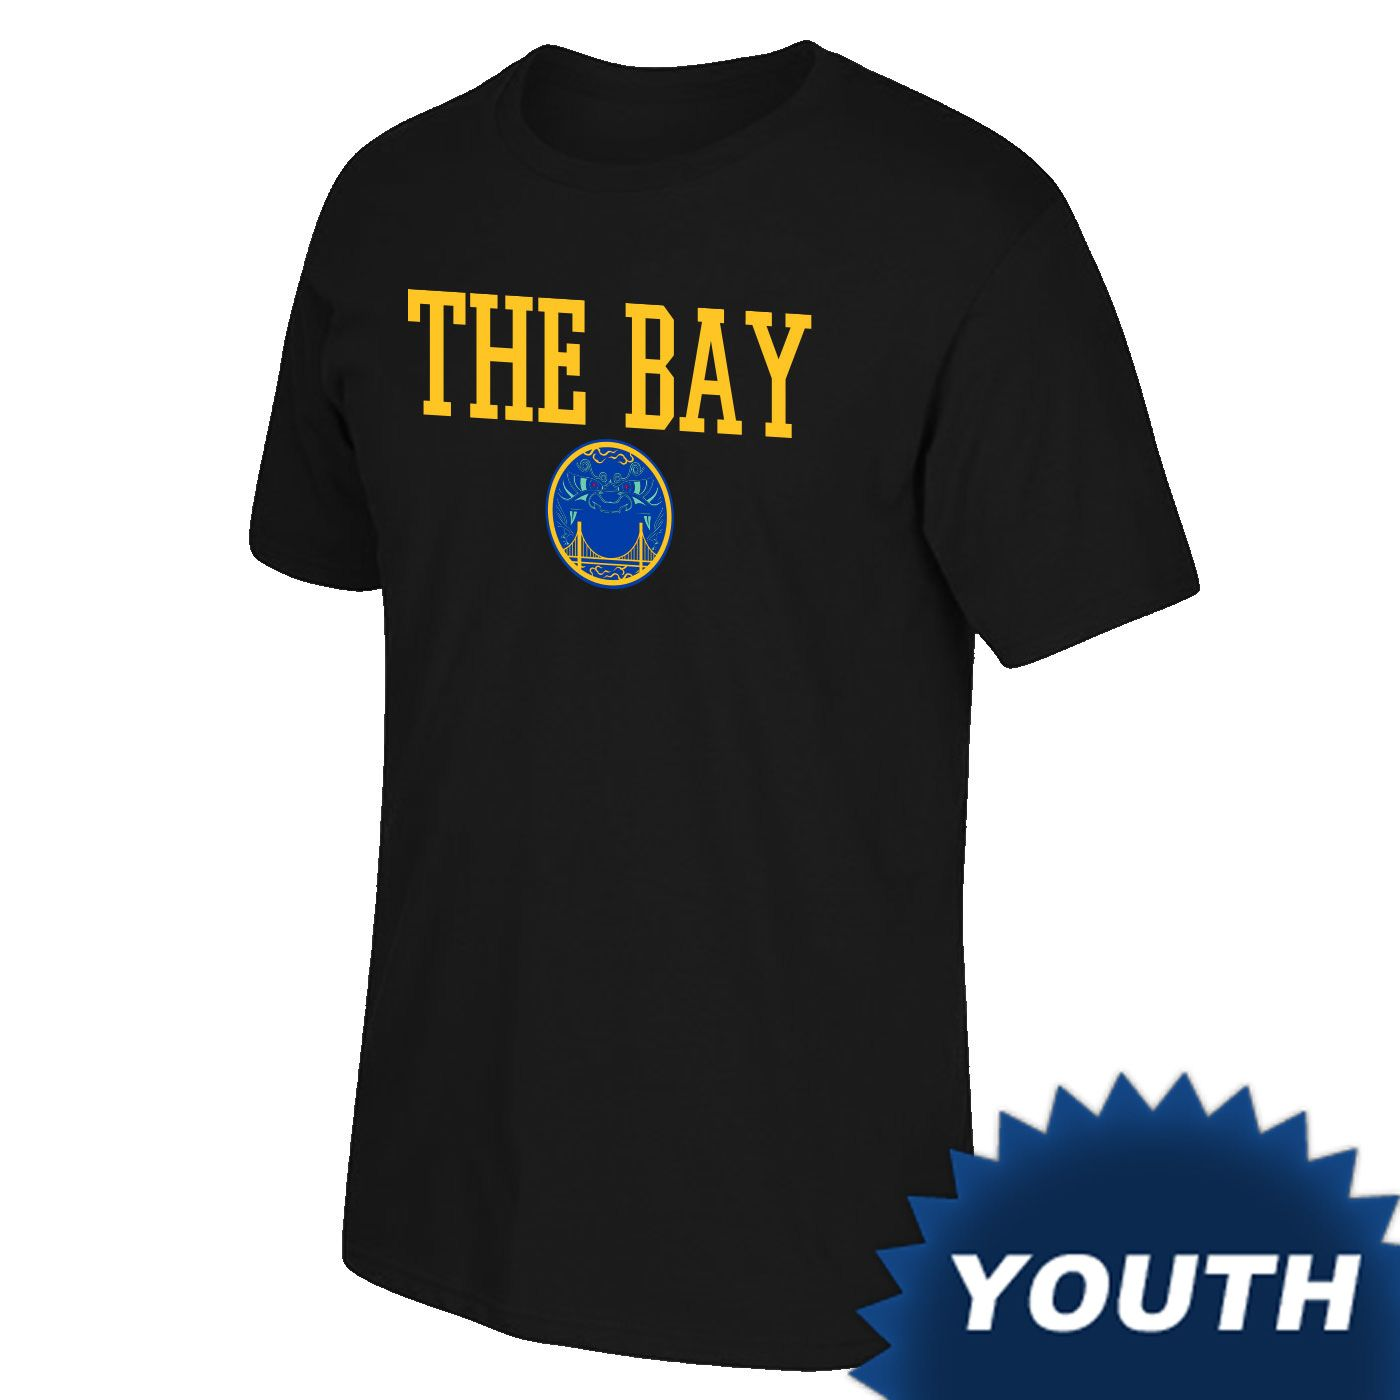 8be112864022 Golden State Warriors Youth Chinese Heritage  The Bay  Wordmark Tee - Black